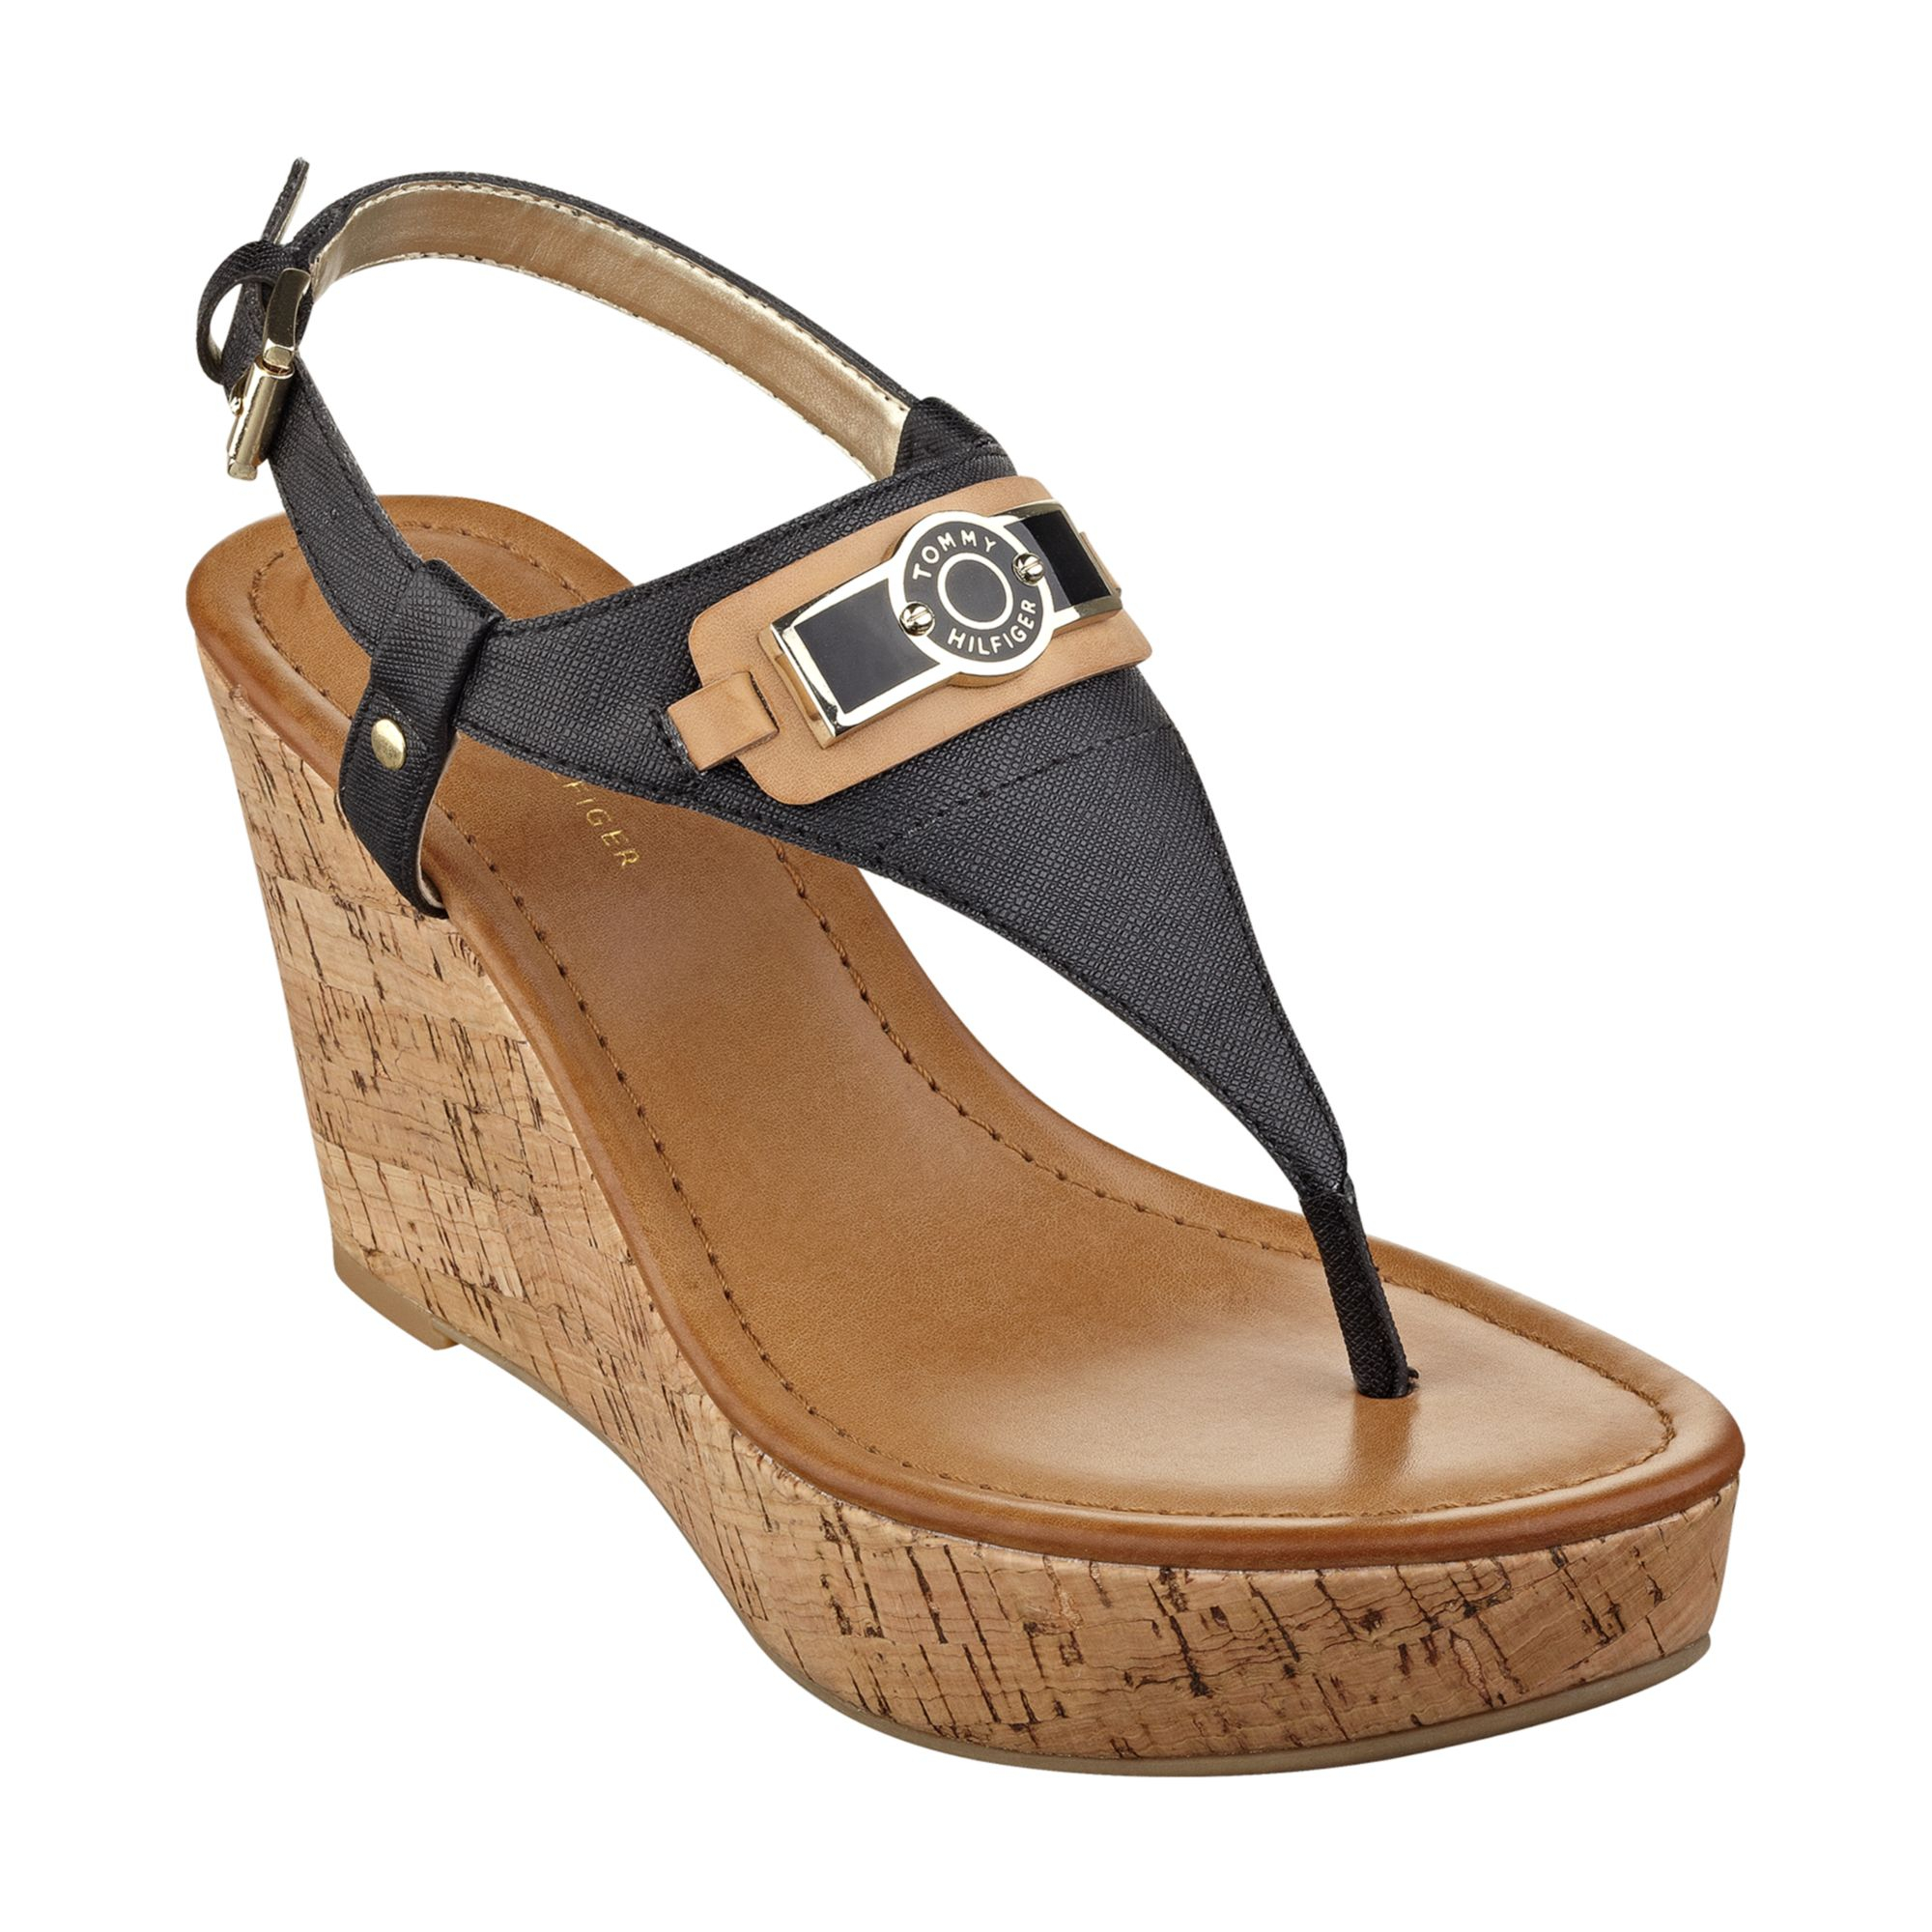 78083f47a Lyst - Tommy Hilfiger Womens Monor Platform Wedge Thong Sandals in Black